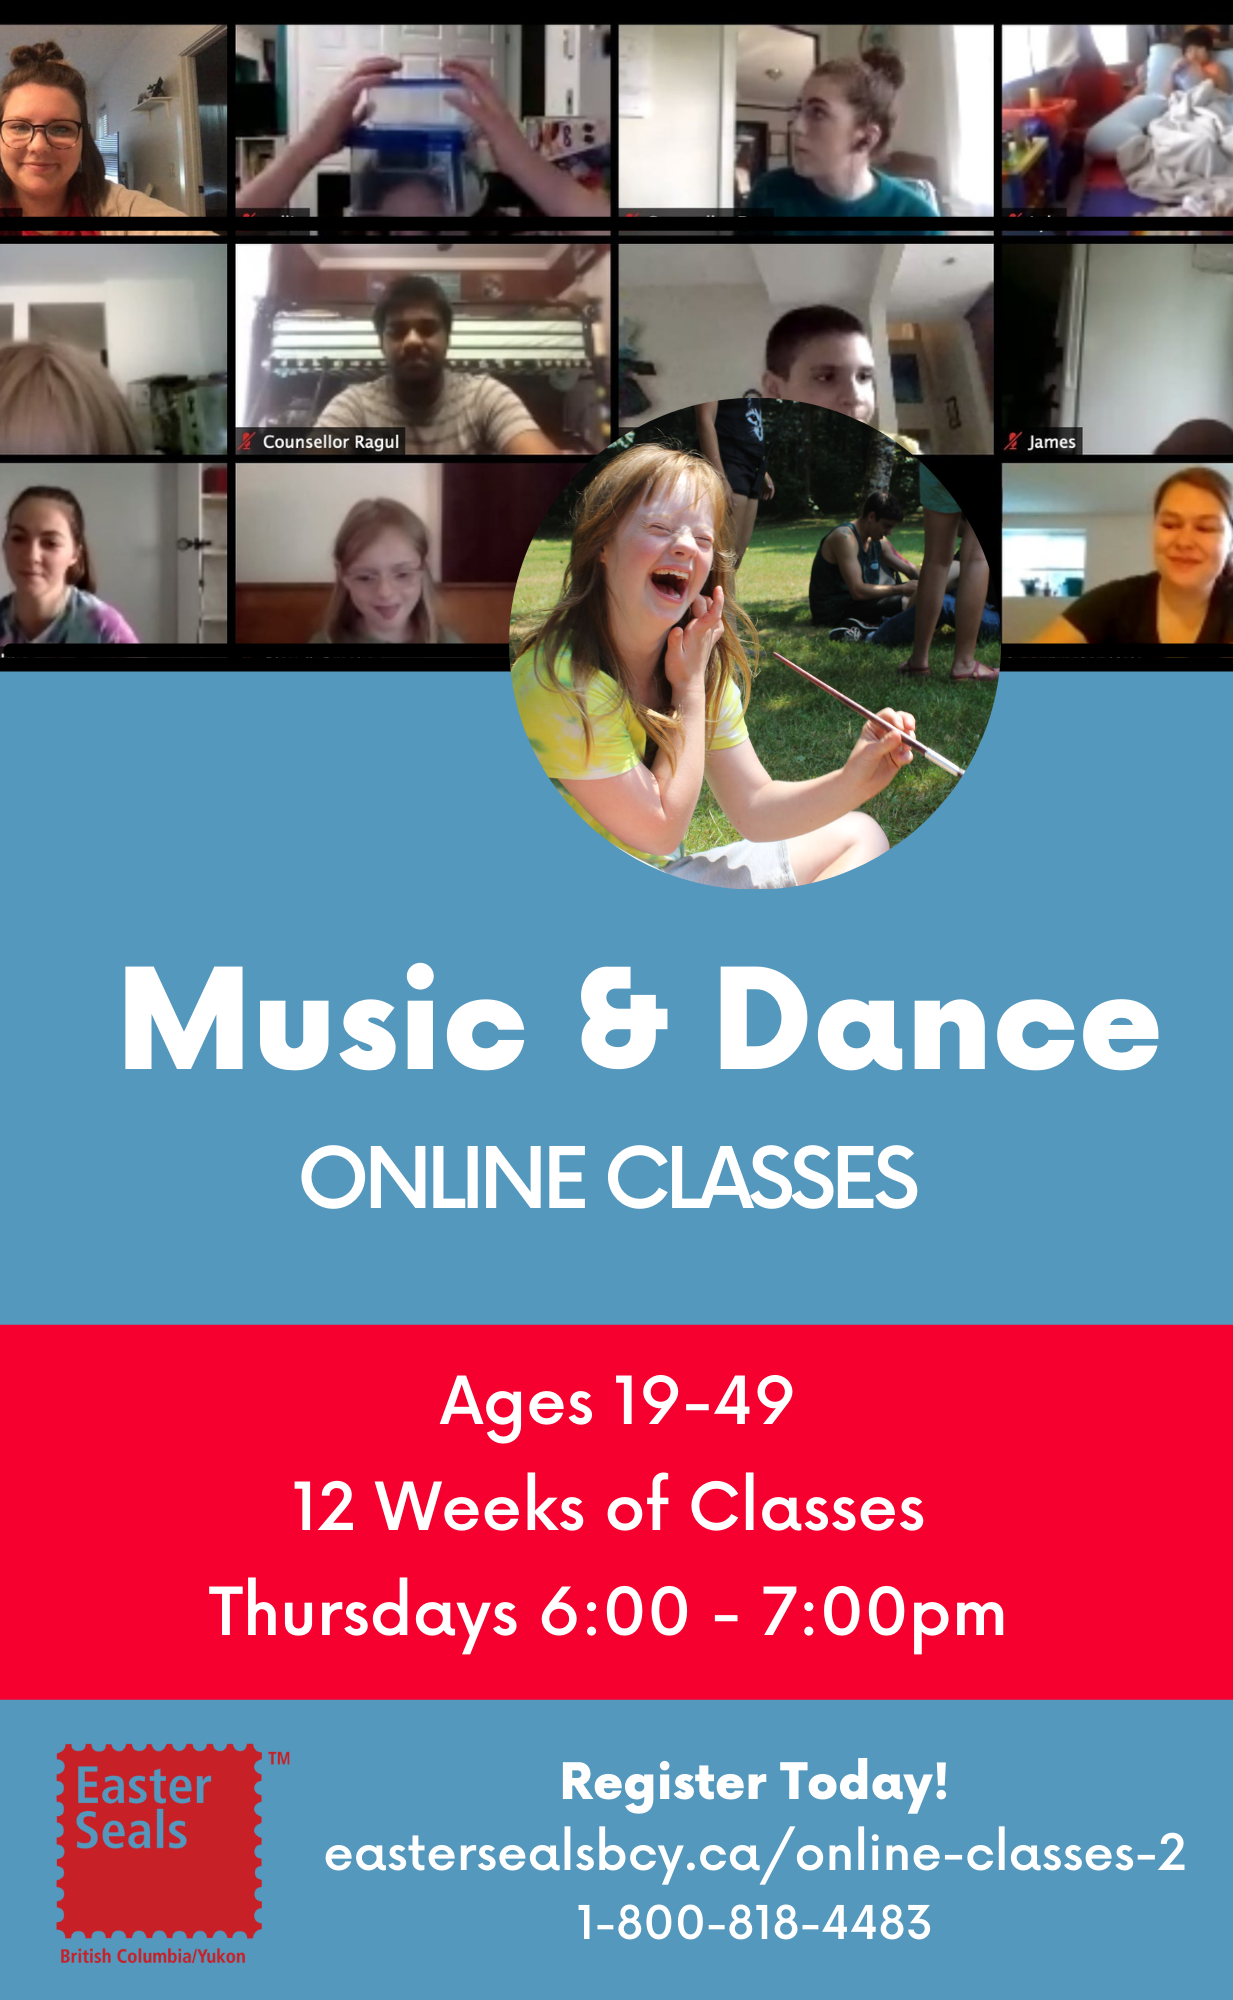 Music and Dance Classes for Ages 19-49